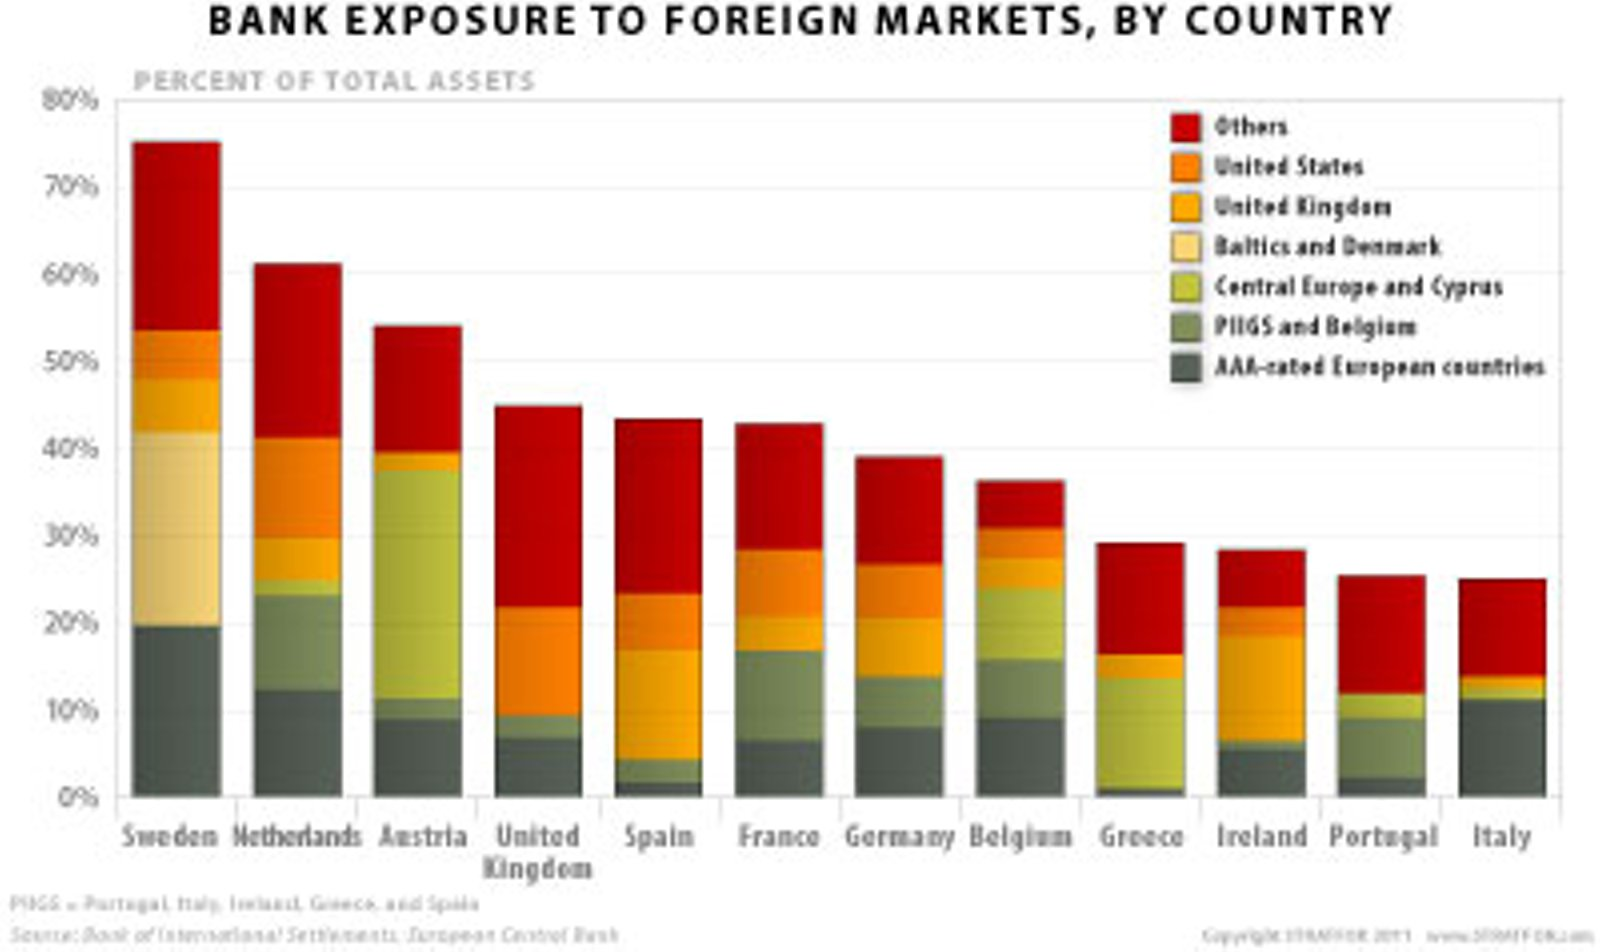 http://einarbb.blog.is/users/72/einarbb/img/bank_exposure_to_foreign_markets_by_country.jpg